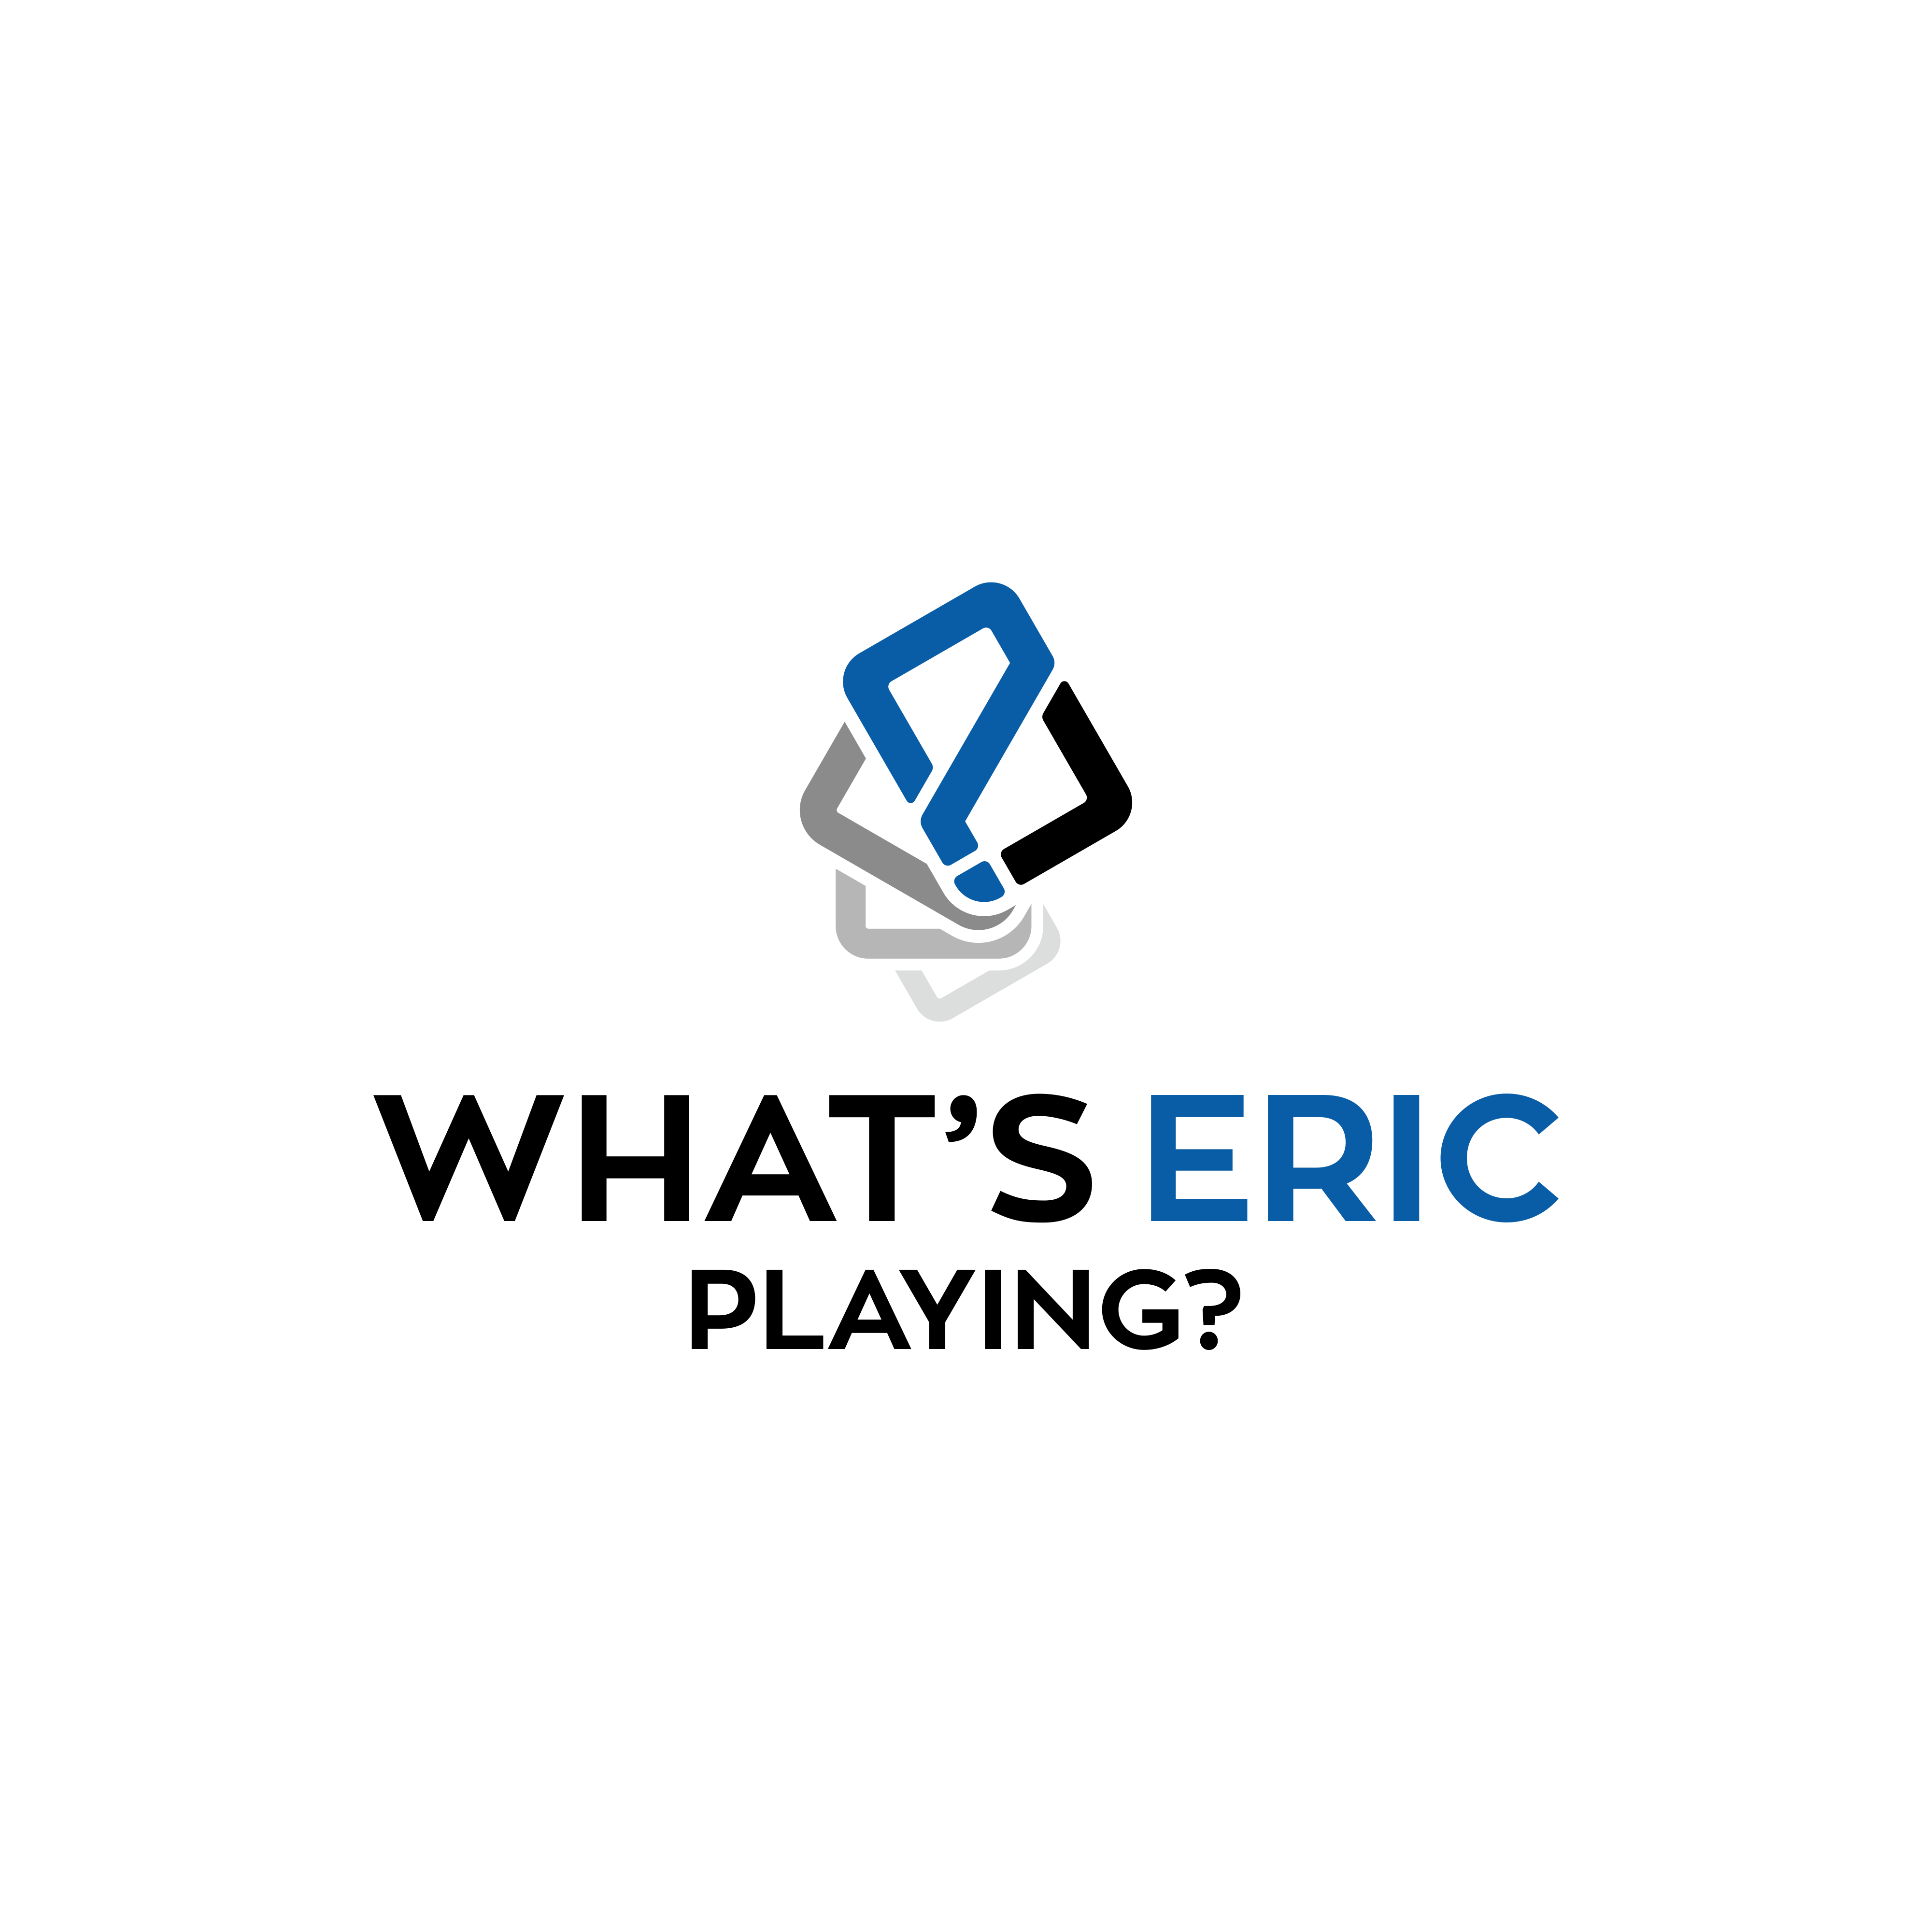 Design a fun logo for What's Eric Playing?